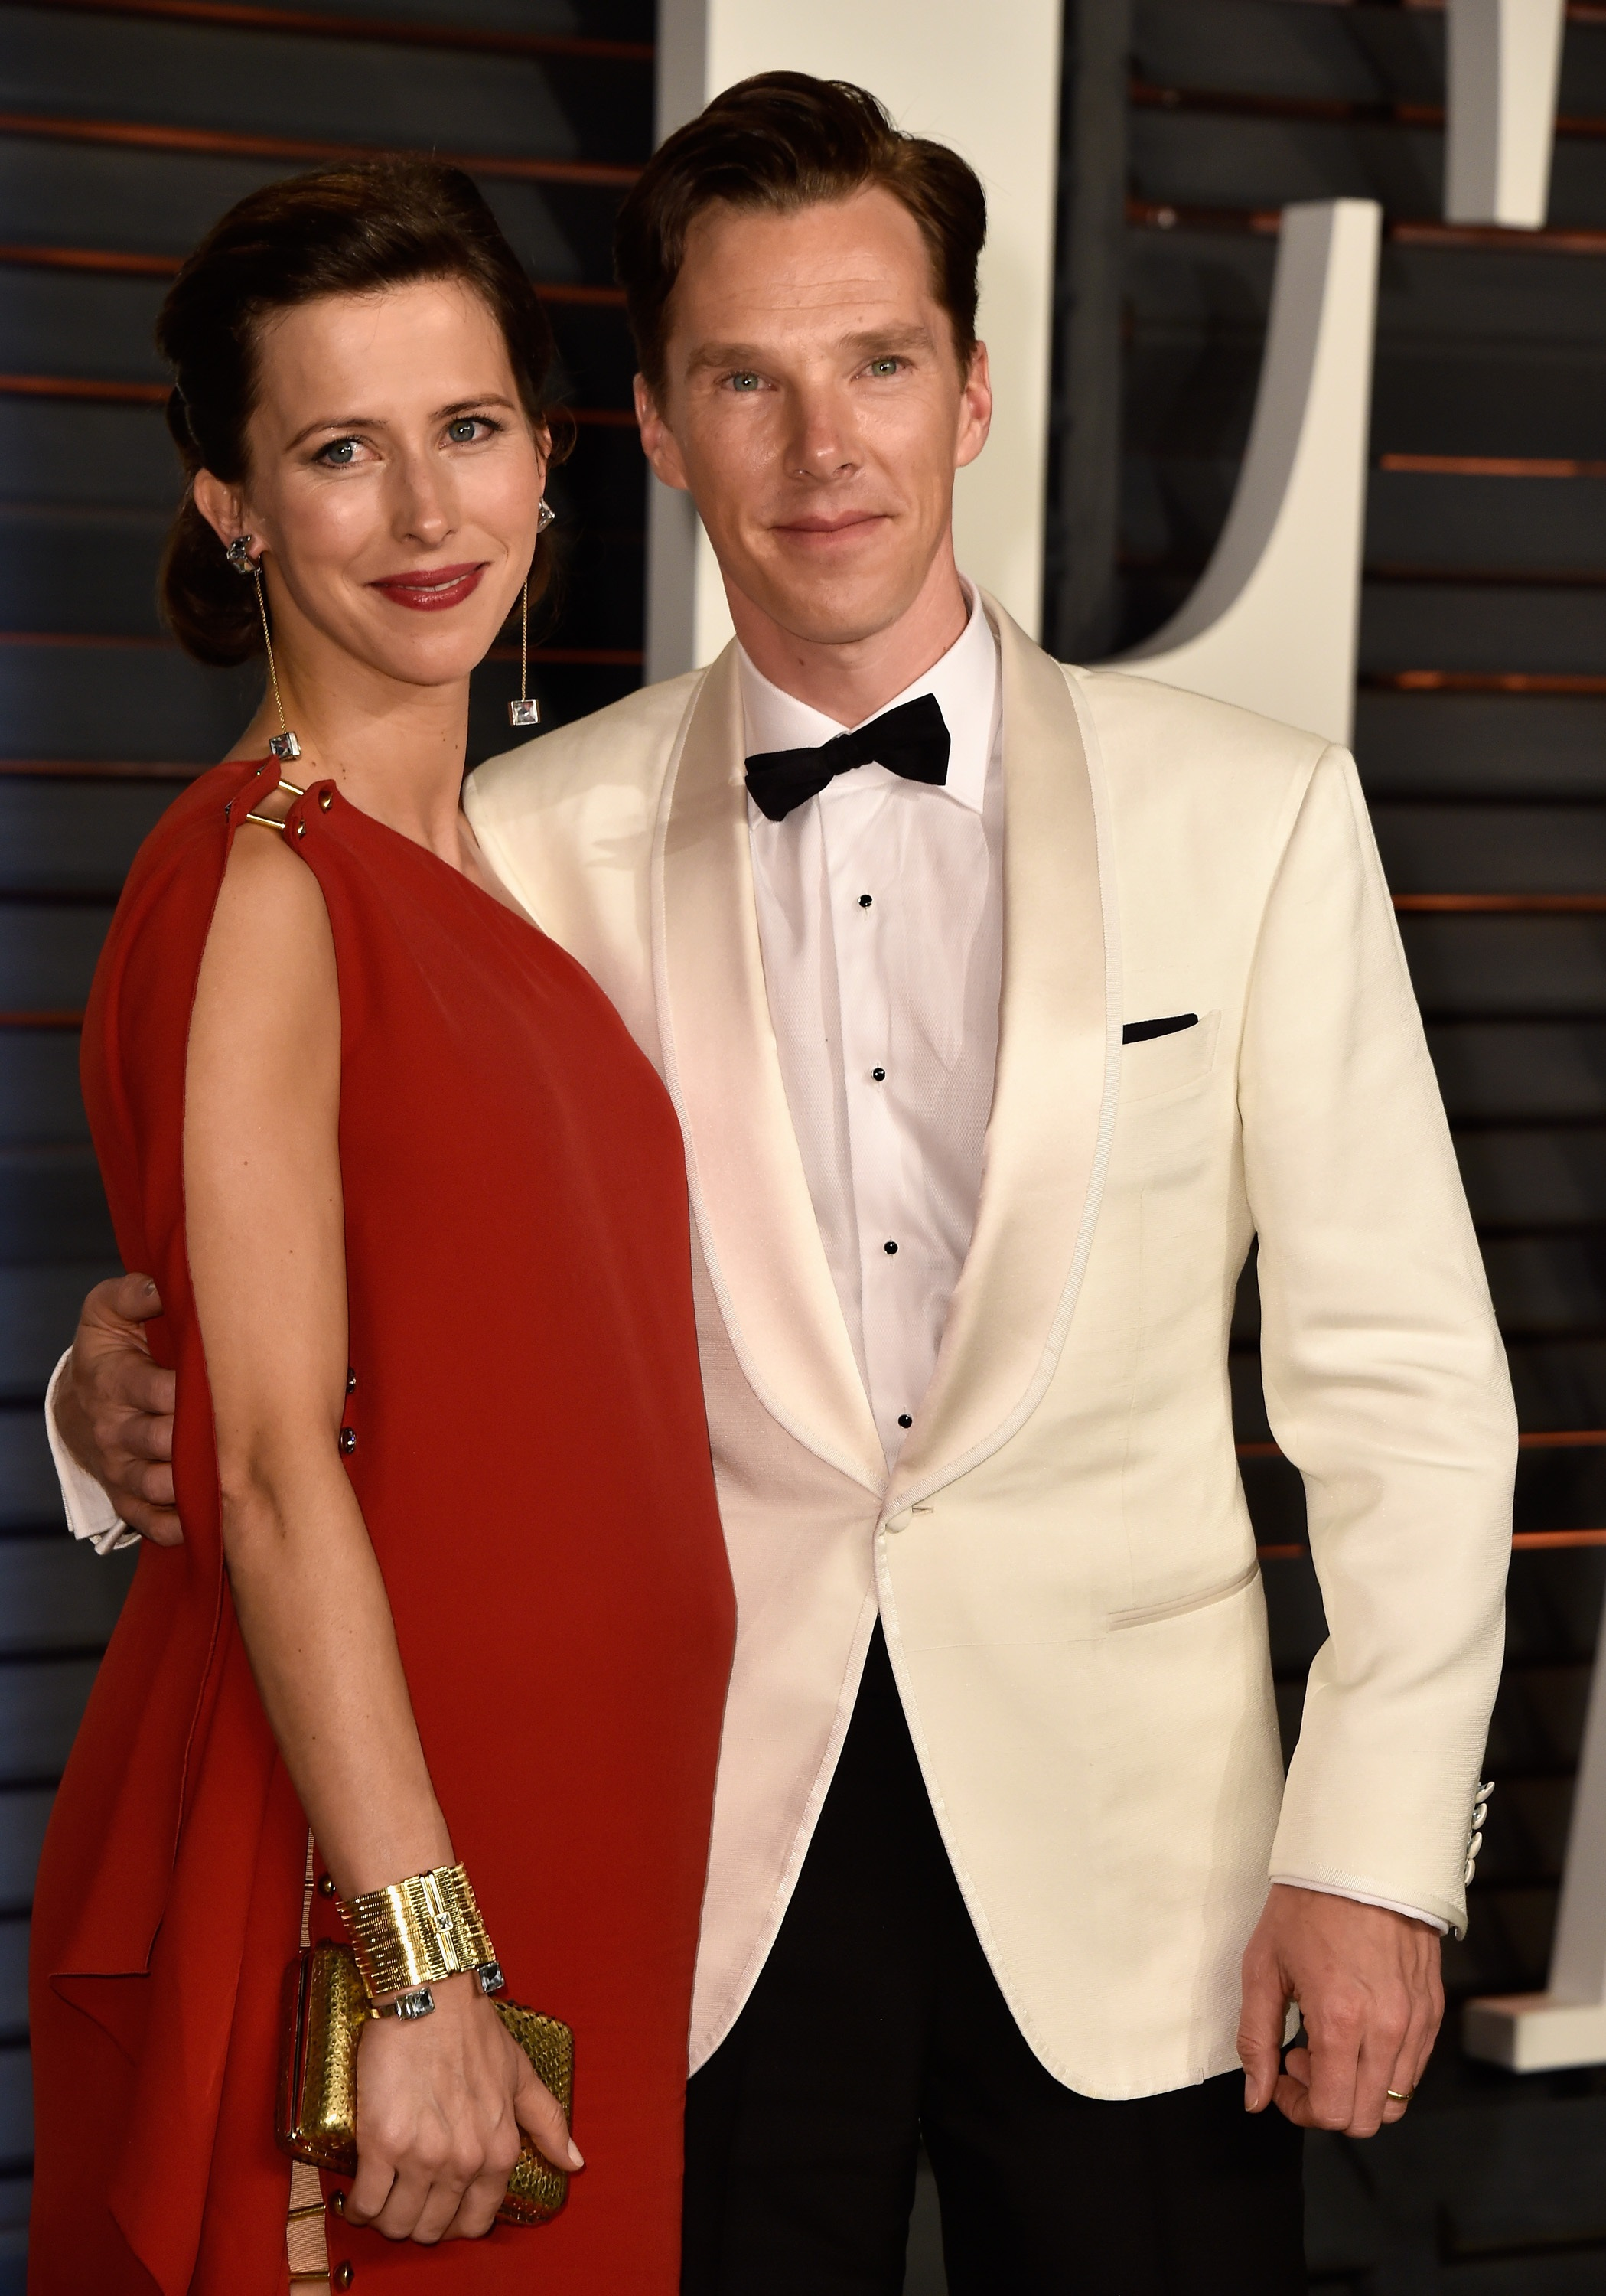 benedict cumberbatch and wife sophie hunter reportedly